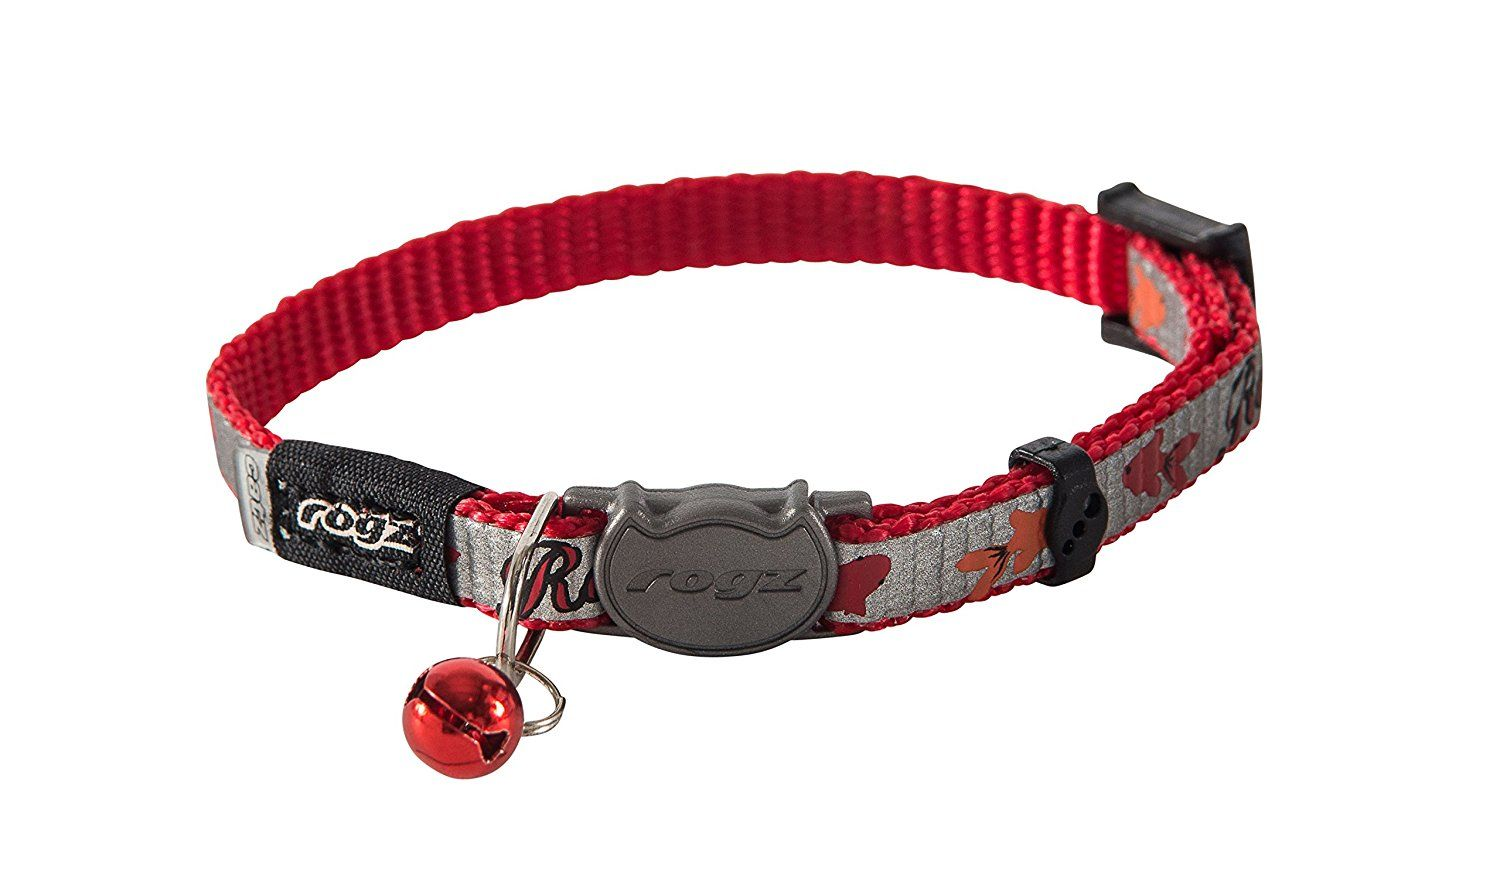 Rogz Catz Kittyrogz Reflectocat Breakaway Collar Red Want Additional Info Click On The Image This Is An Affiliate Link A Kitten Collars Rogz Cat Collars